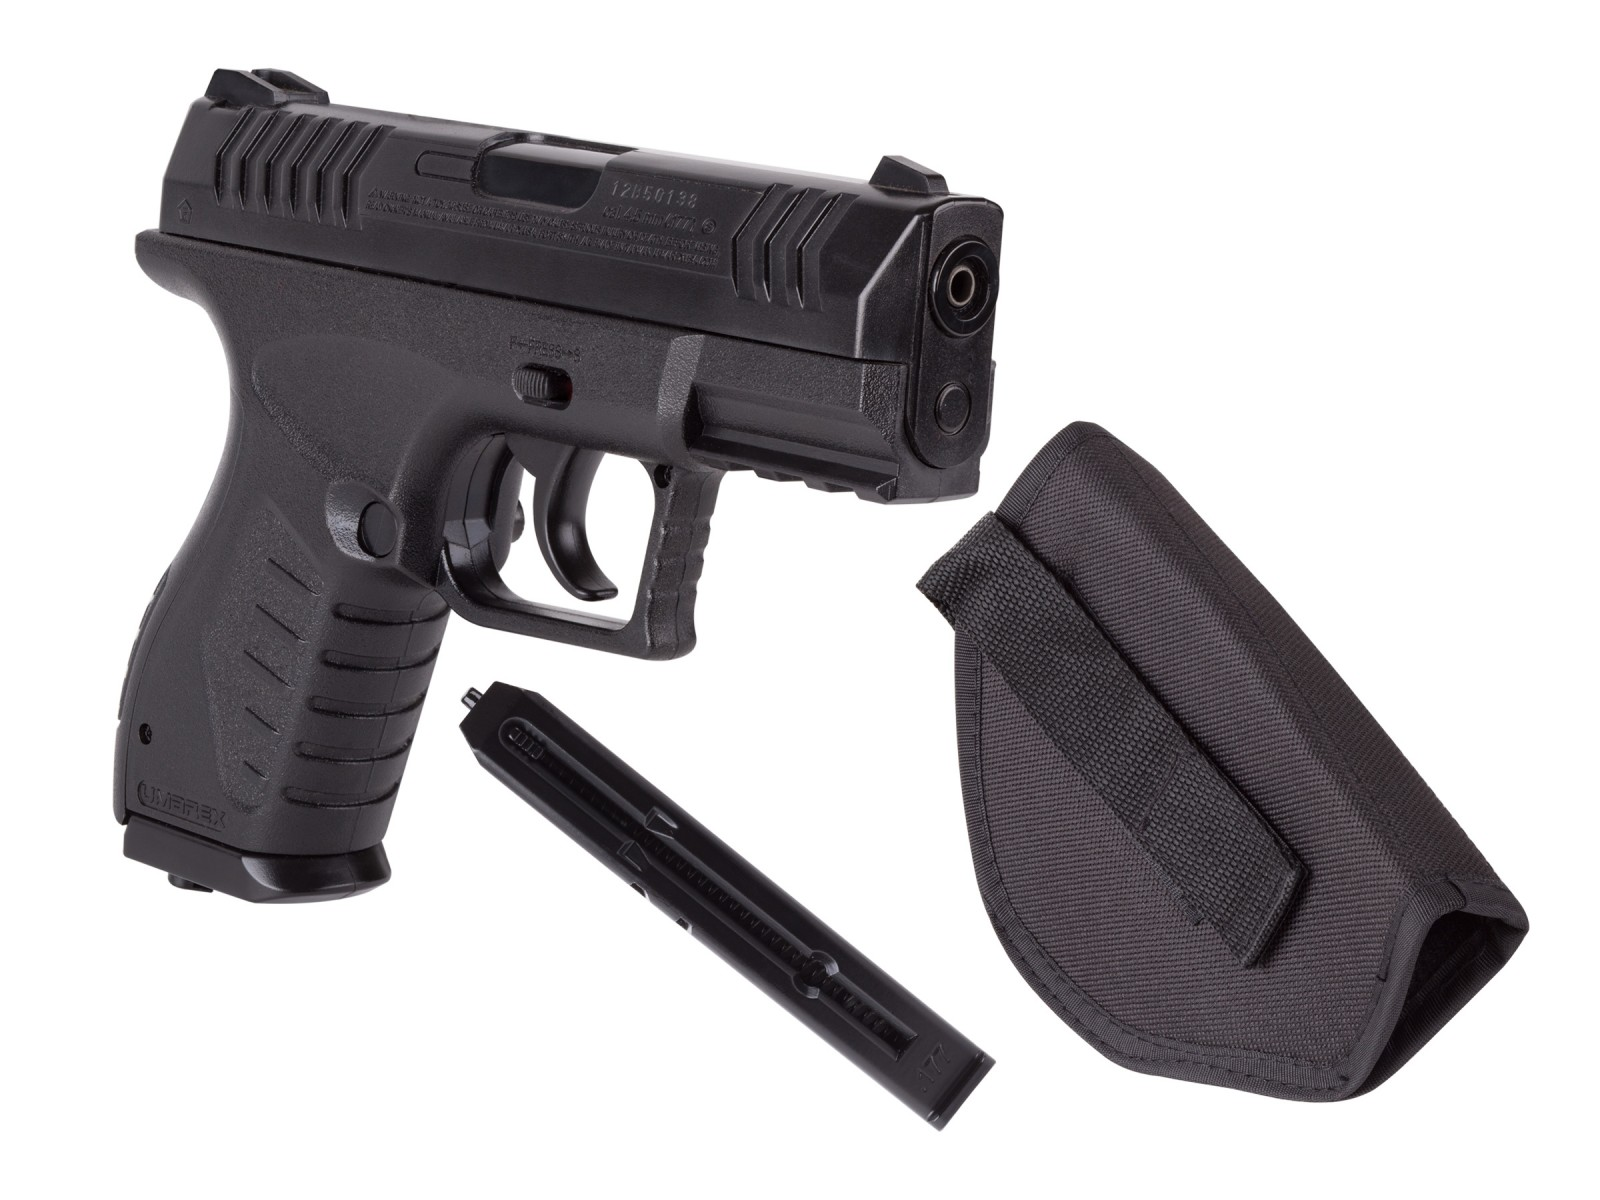 Umarex XBG CO2 Pistol Kit 0.177